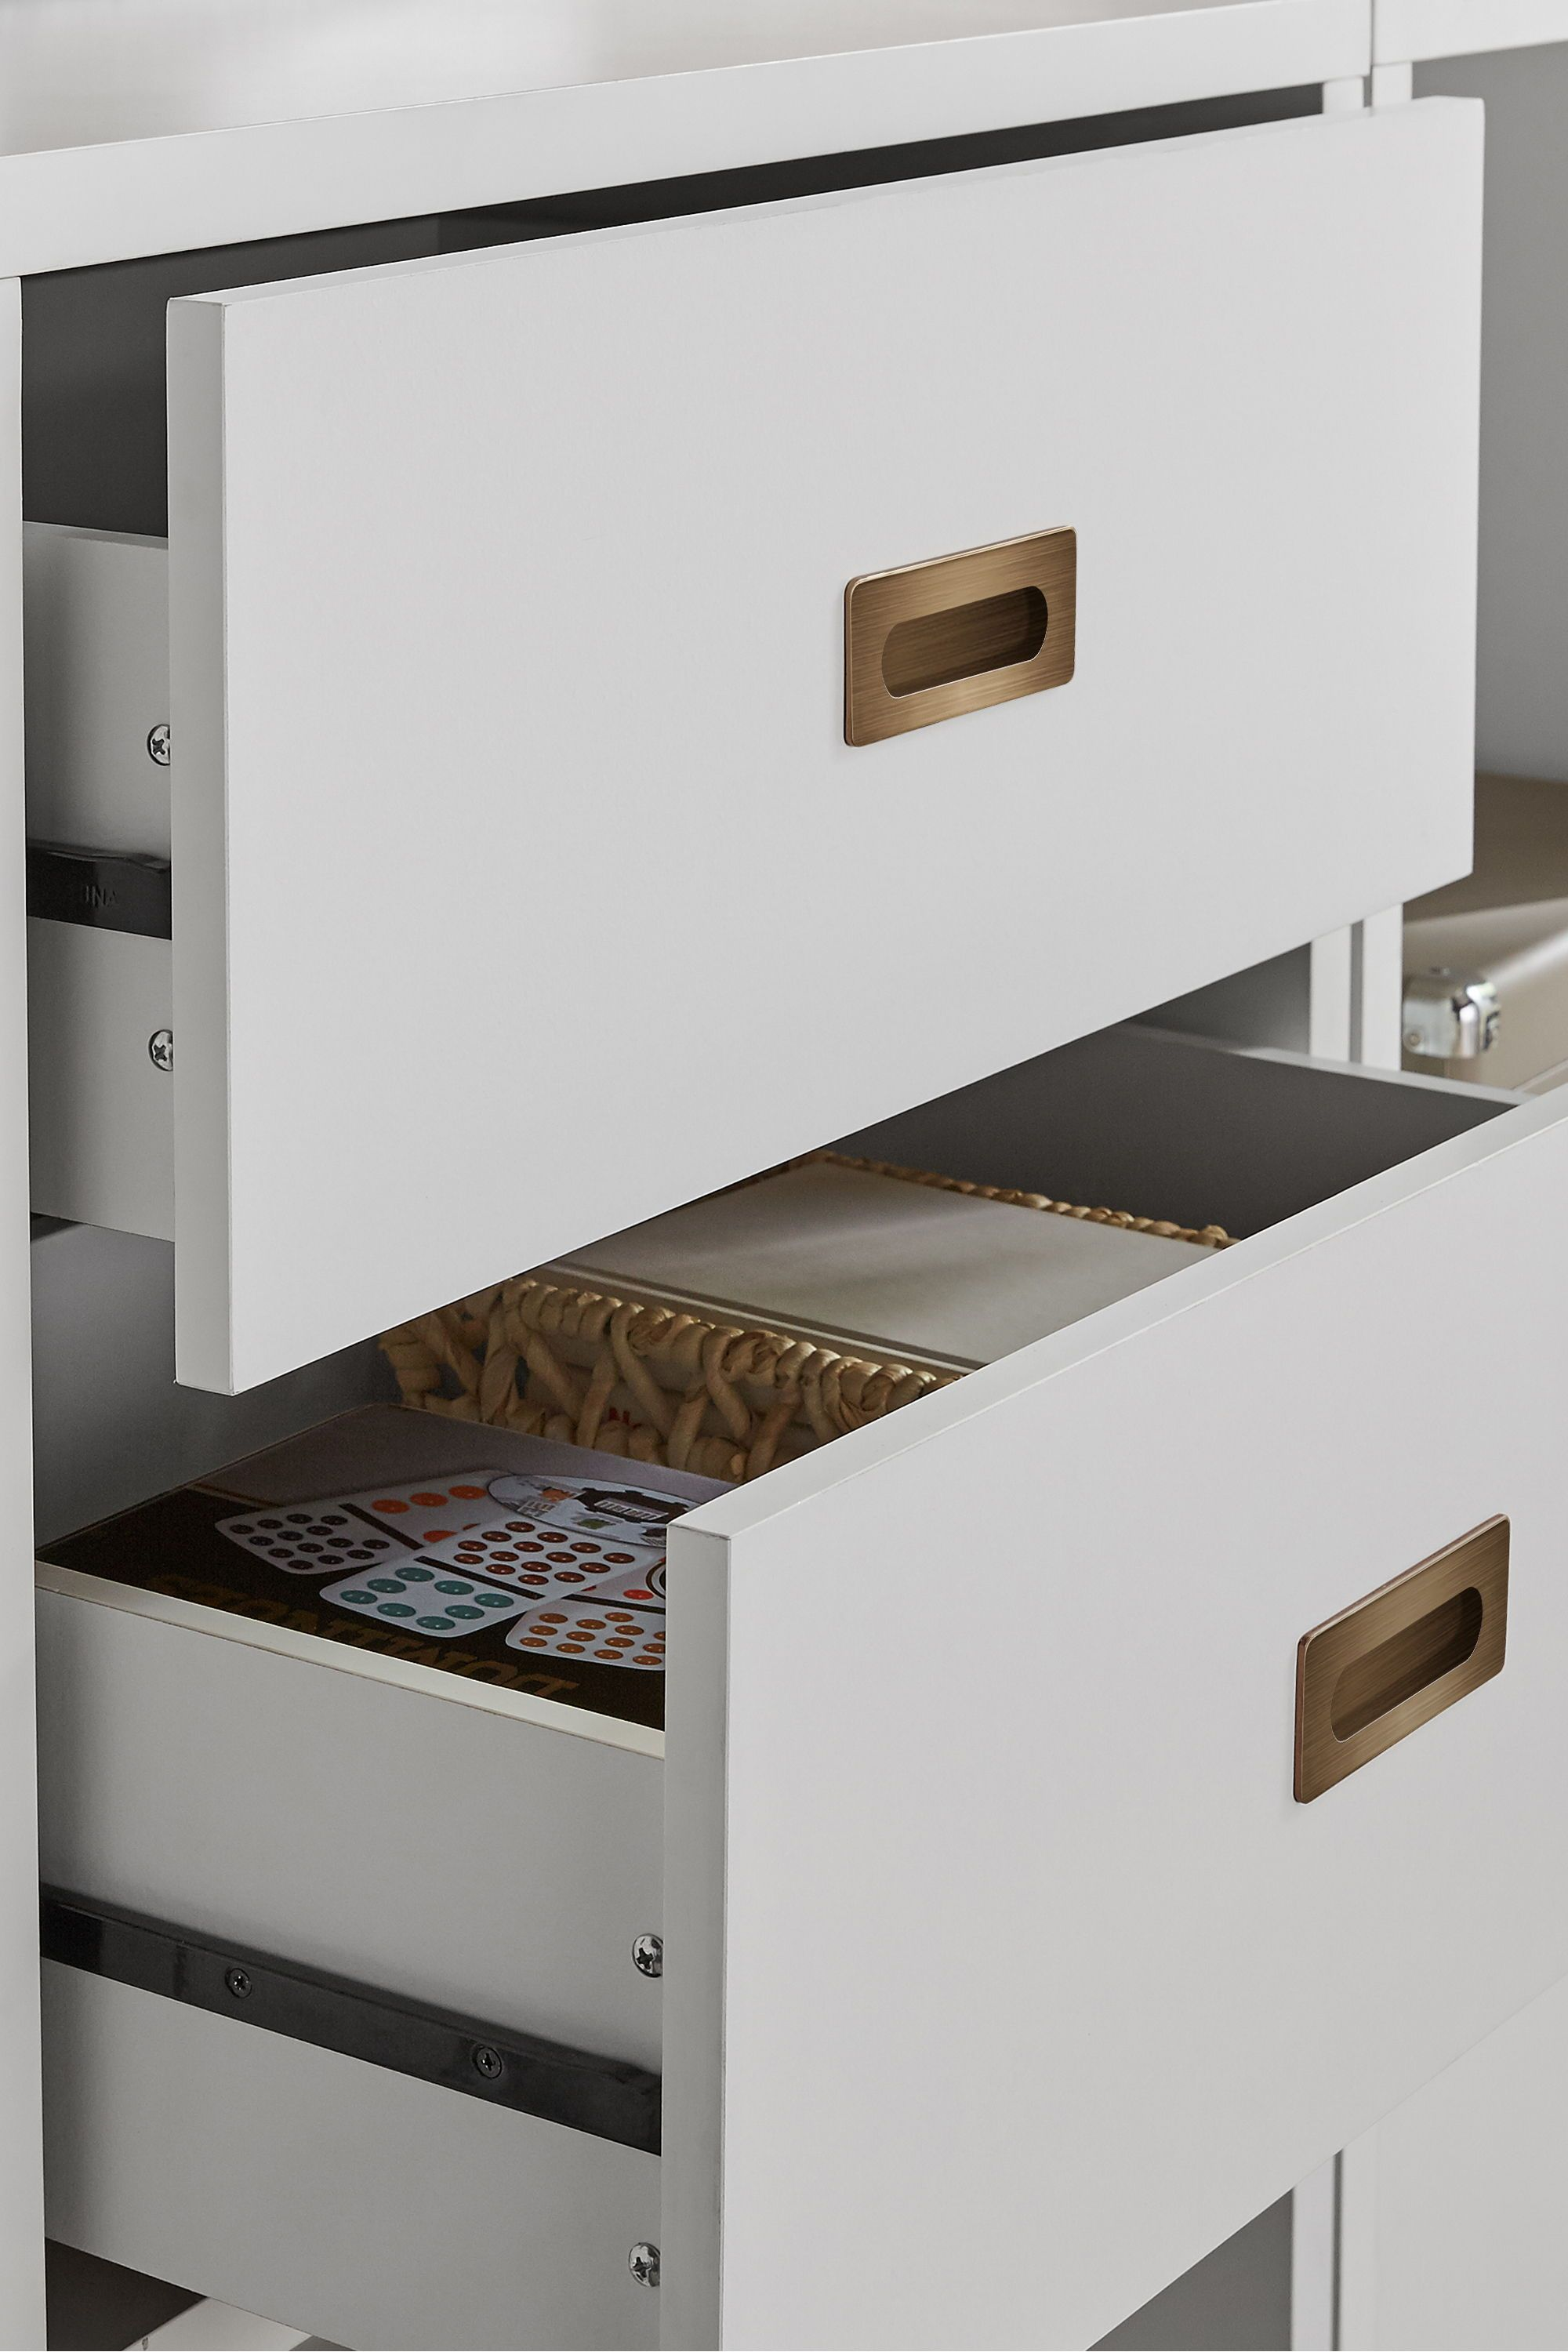 White Stow 2 Drawer Lateral File Cabinet File Cabinets Storage Poppin Filing Cabinet Lateral File Cabinet Lateral File